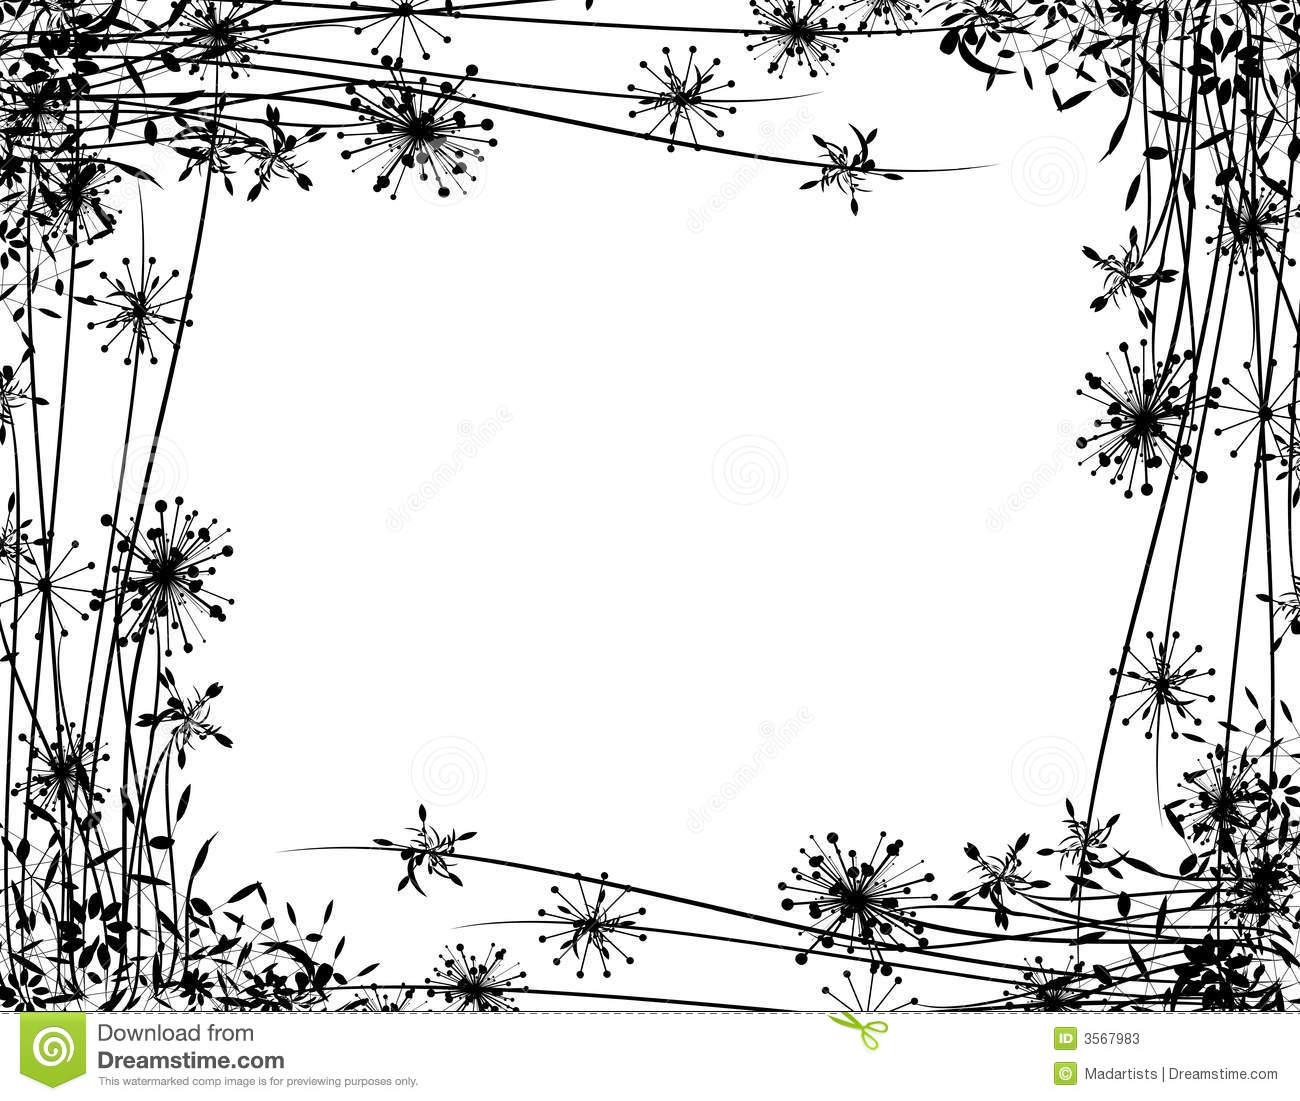 Background Border Or Frame Illustration Featuring A Black Silhouette